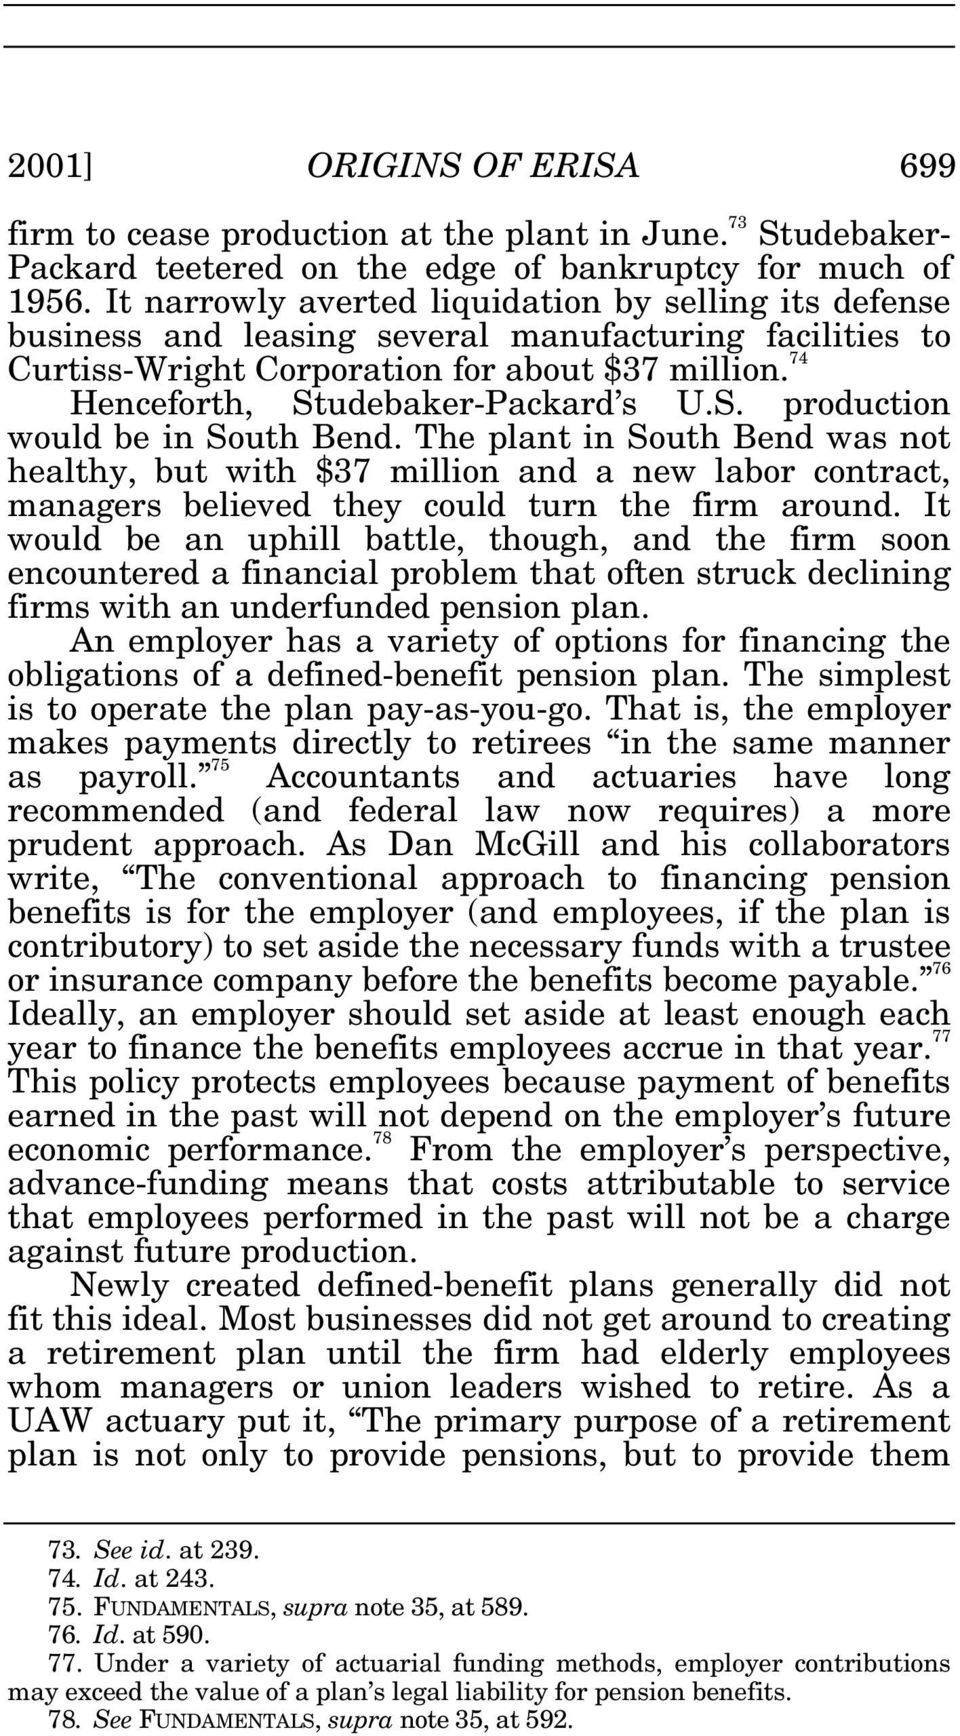 S. production would be in South Bend. The plant in South Bend was not healthy, but with $37 million and a new labor contract, managers believed they could turn the firm around.